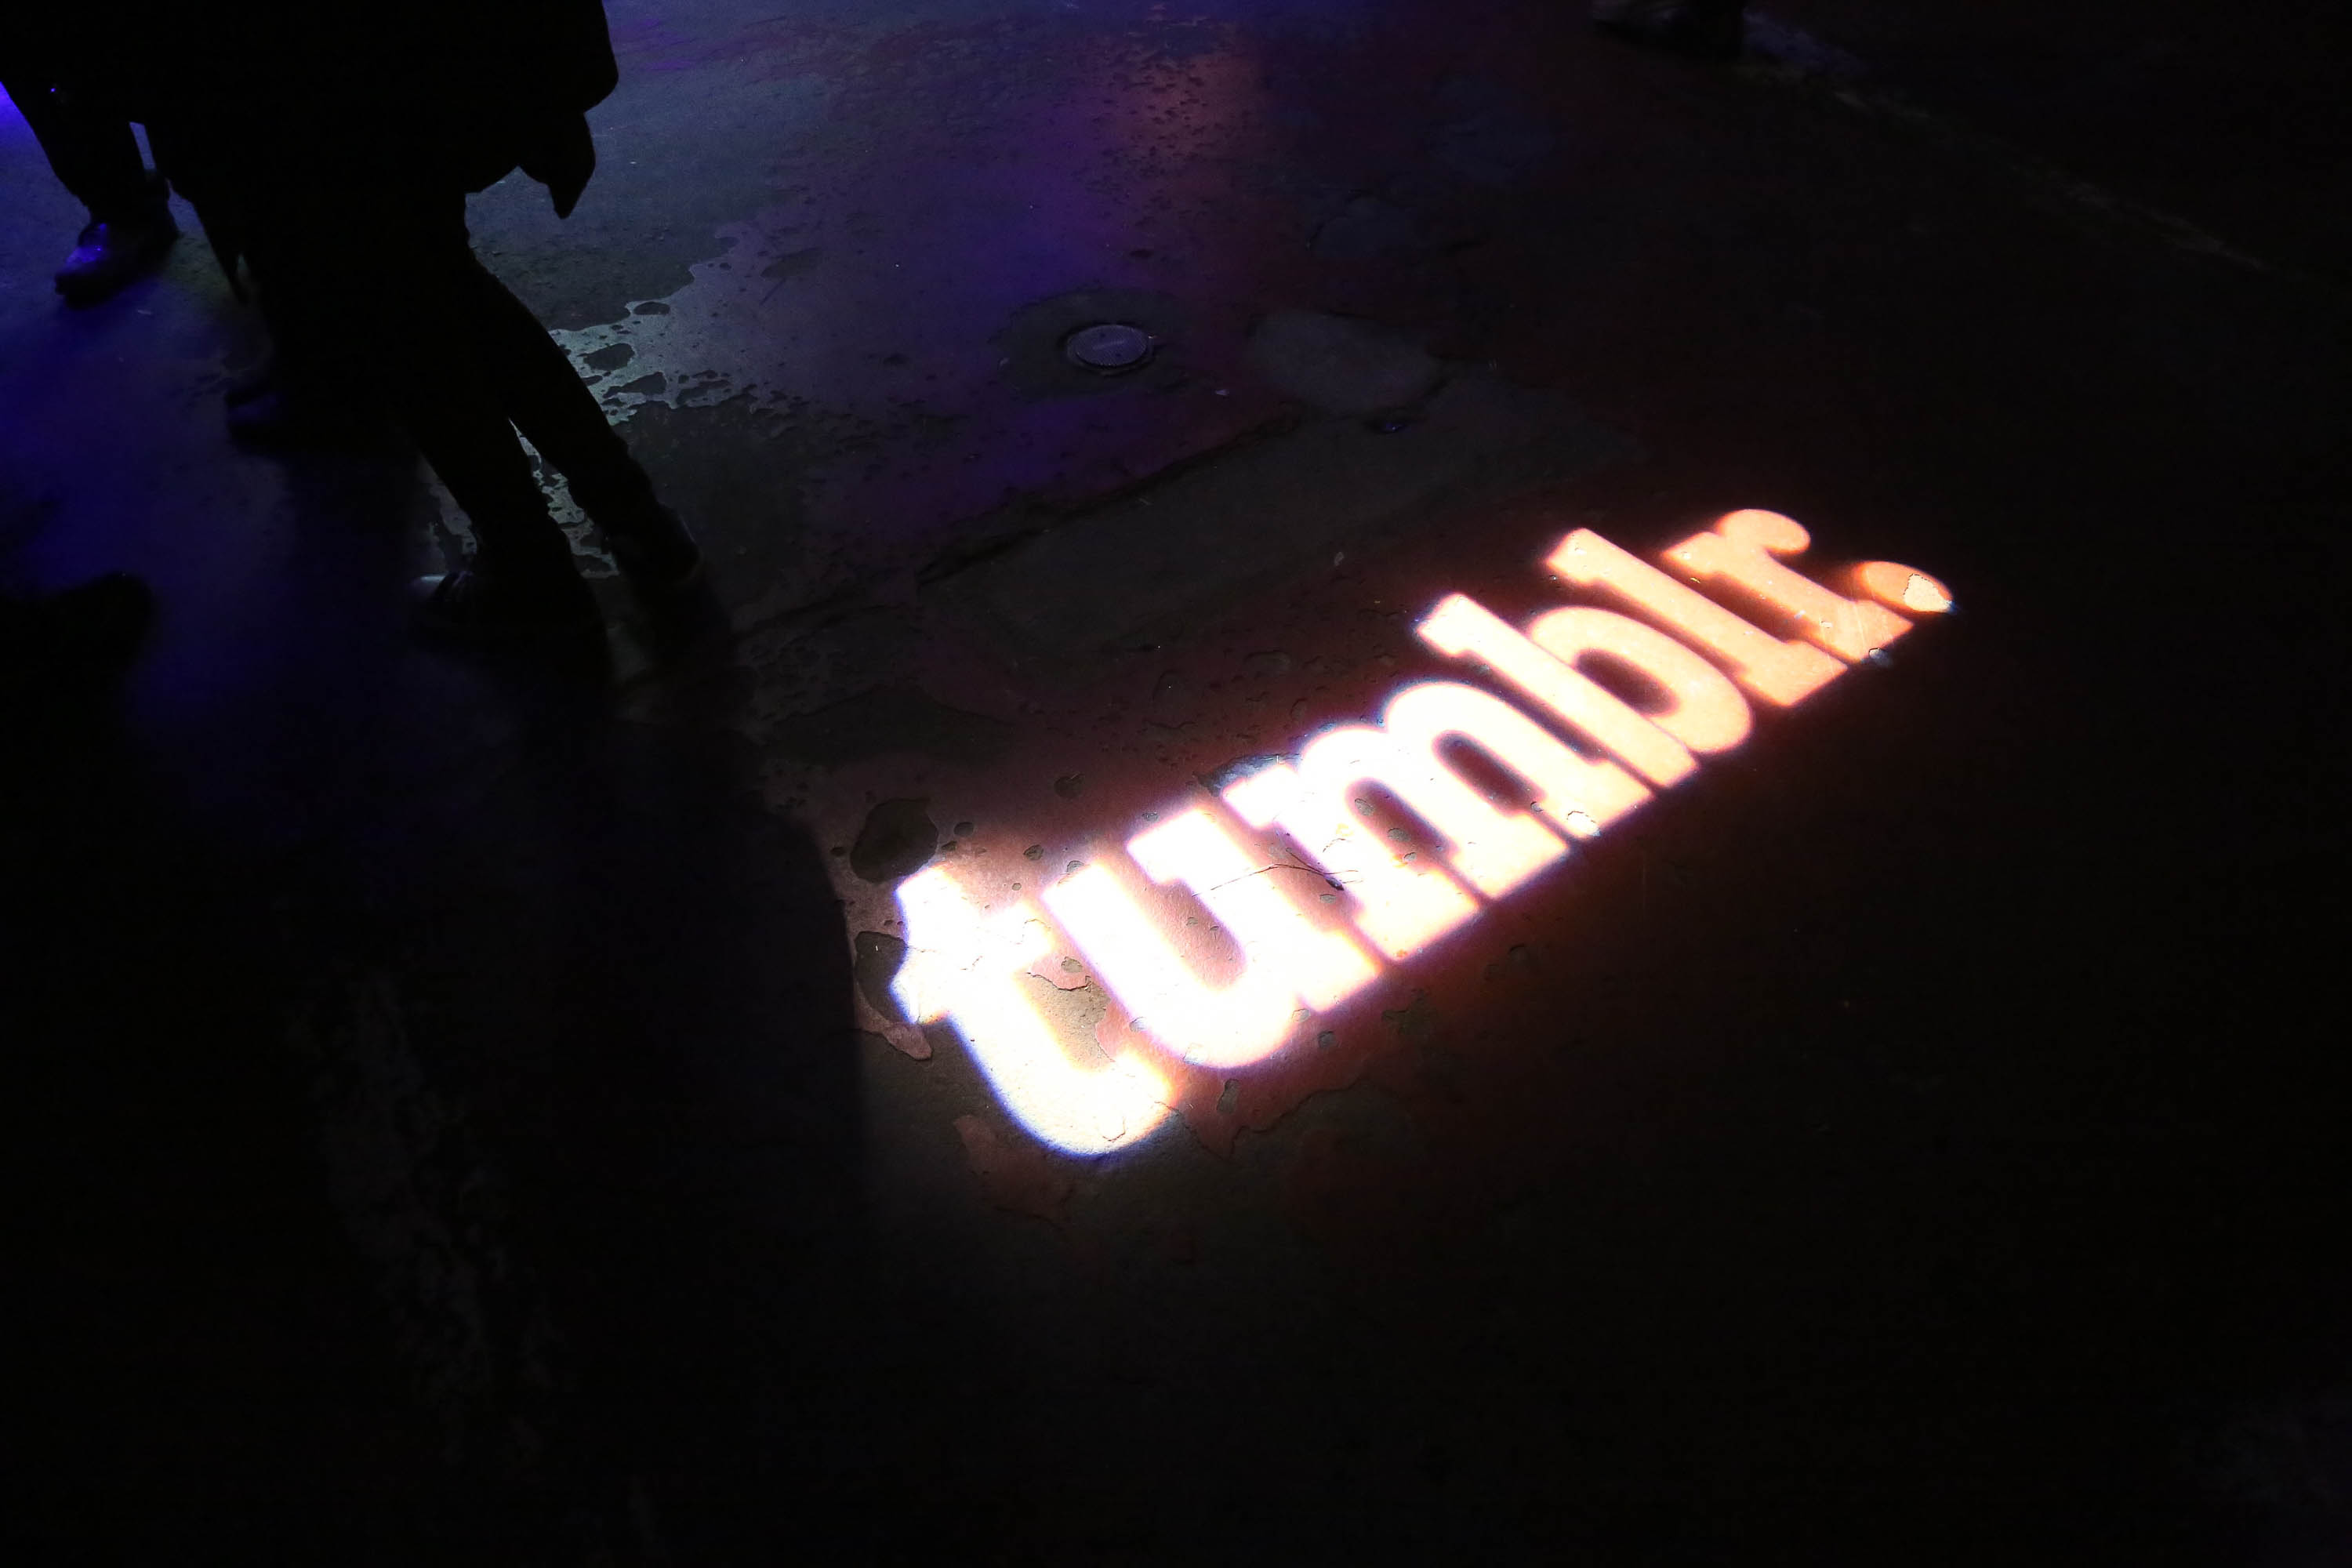 Tumblr is already flagging innocent posts as porn - The Verge